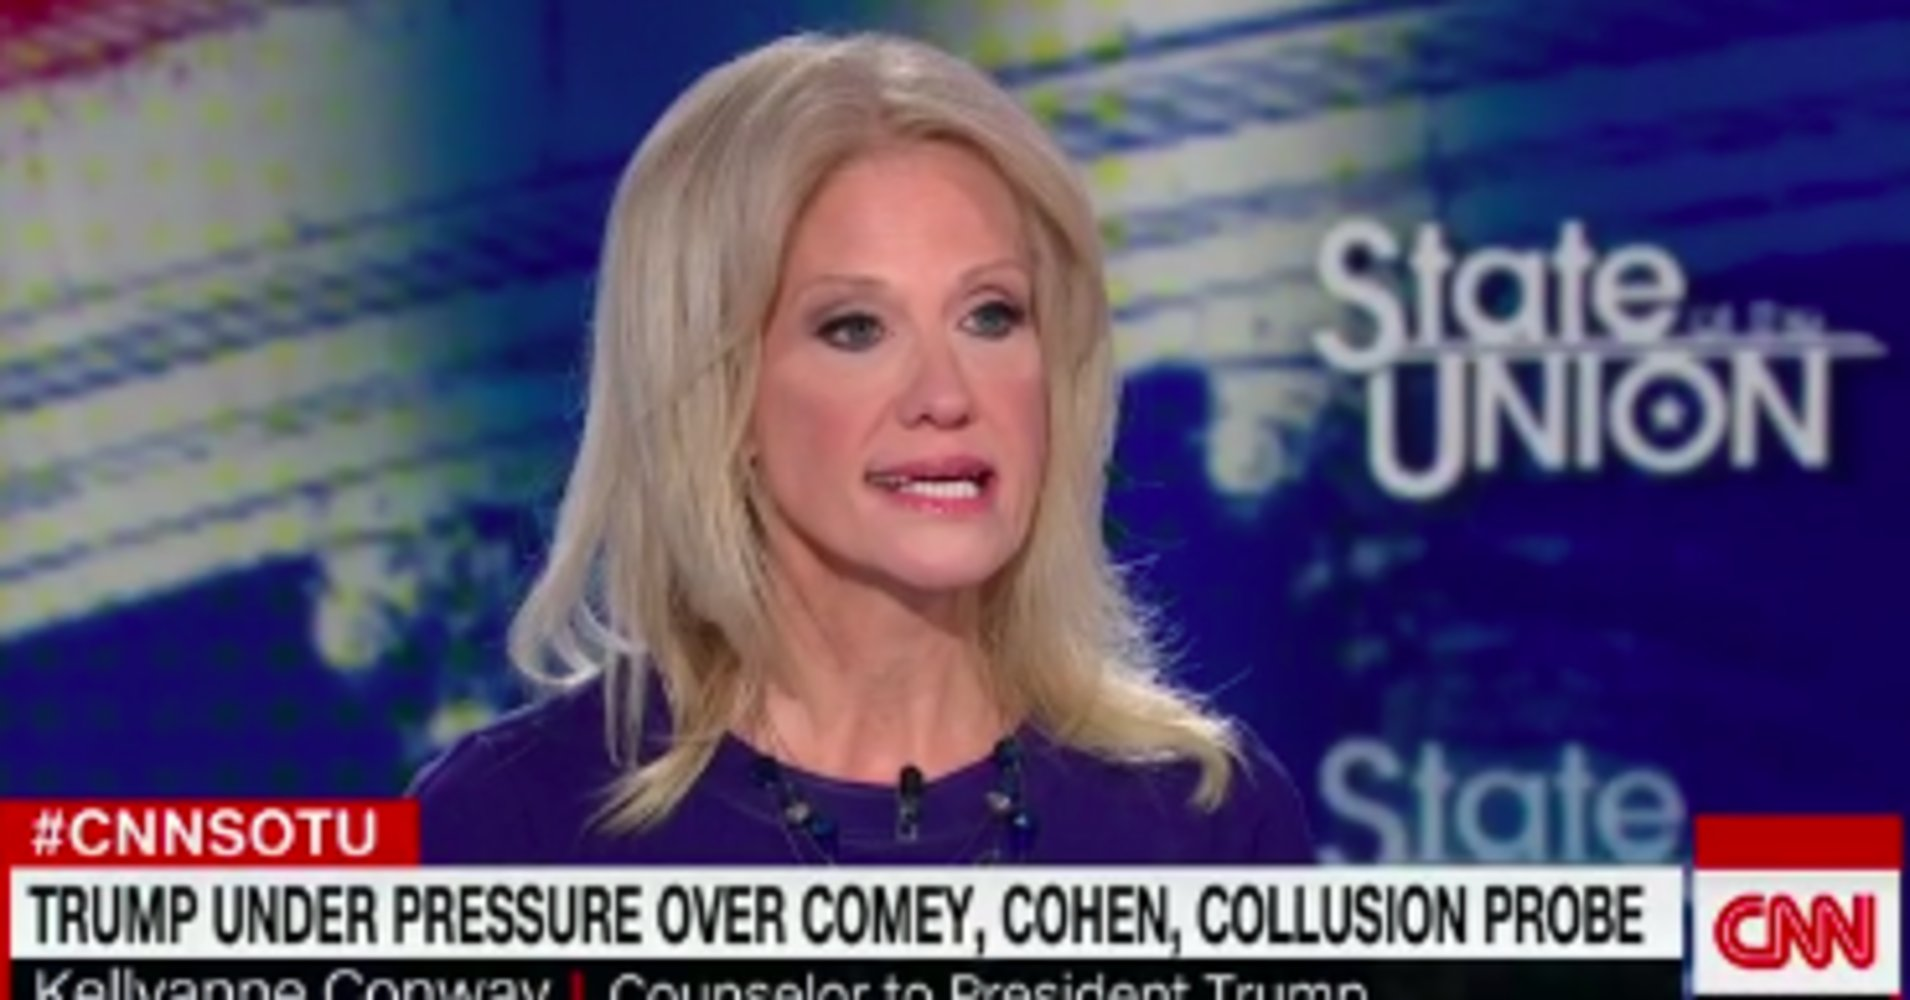 Kellyanne Conway Flips Out When Asked About Her Husband's Trump-Trolling Tweets - HuffPost https://t.co/gfRz7xws9I https://t.co/fxzOetrByo